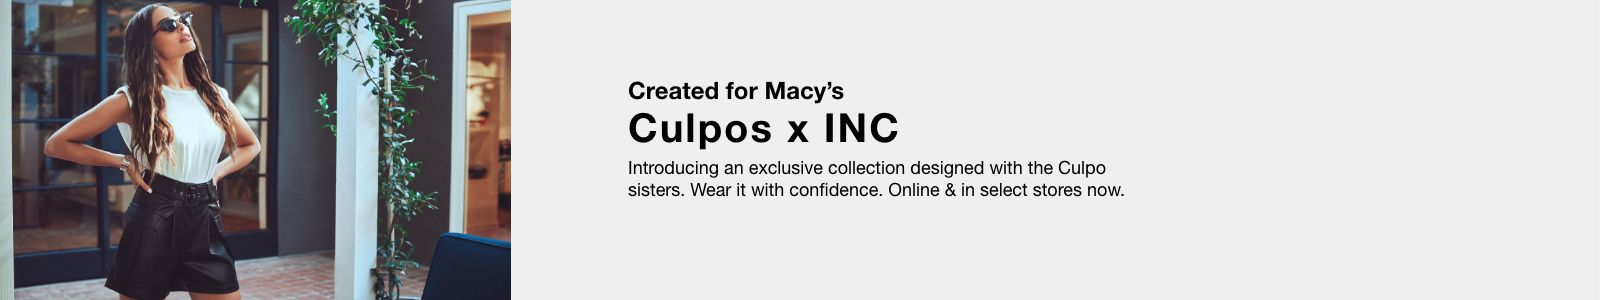 Created for Macys, Culpos x INC, Introducing an exclusive collection designed with the Culpo sisters, Wear it with confidence, Online & in select stores now